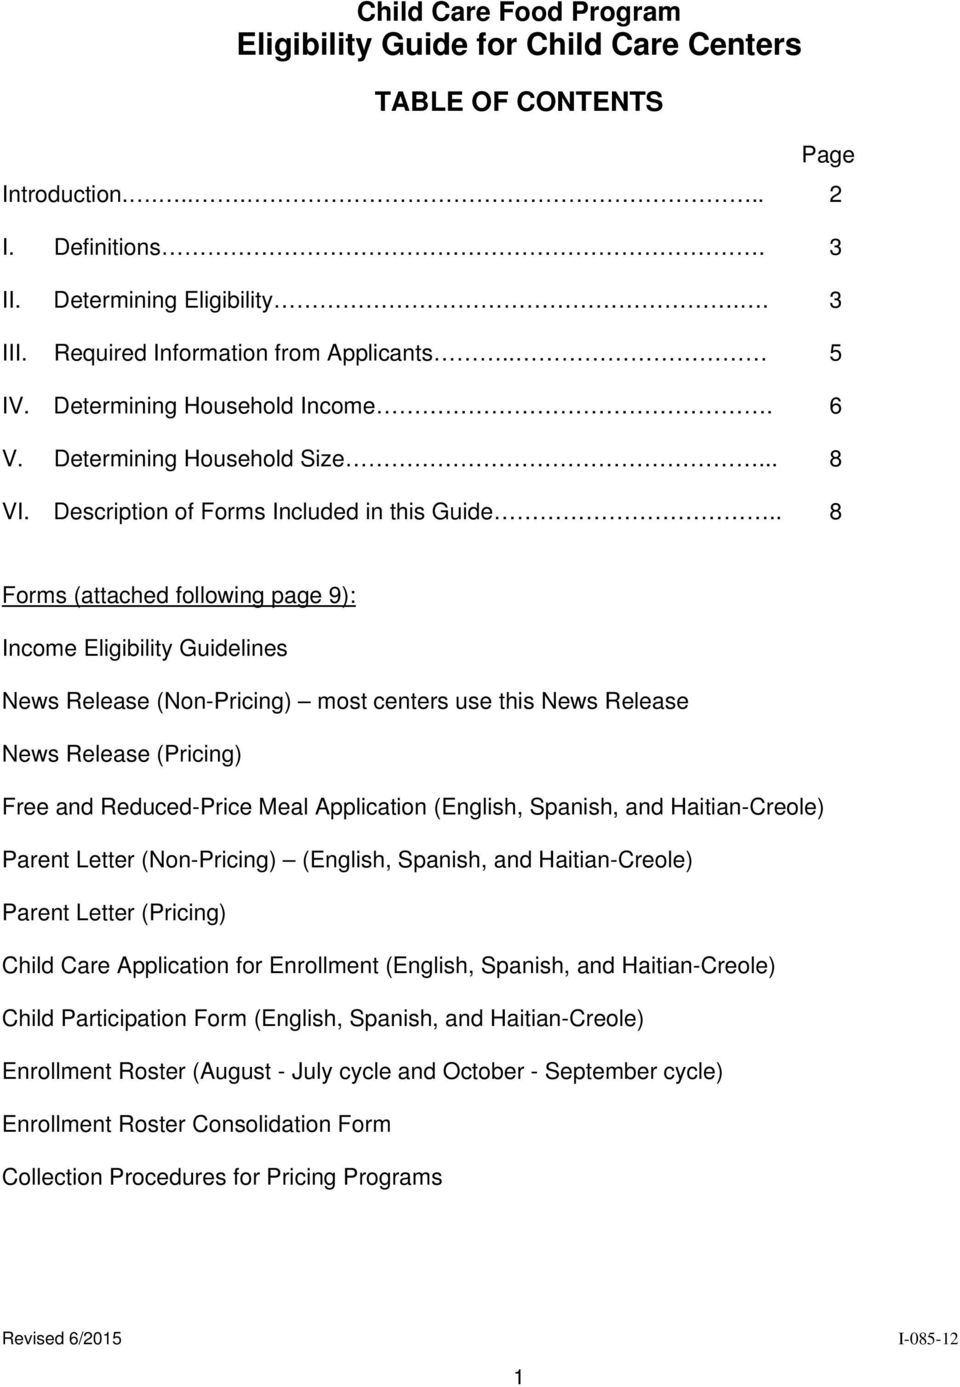 . 8 Page Forms (attached following page 9): Income Eligibility Guidelines News Release (Non-Pricing) most centers use this News Release News Release (Pricing) Free and Reduced-Price Meal Application